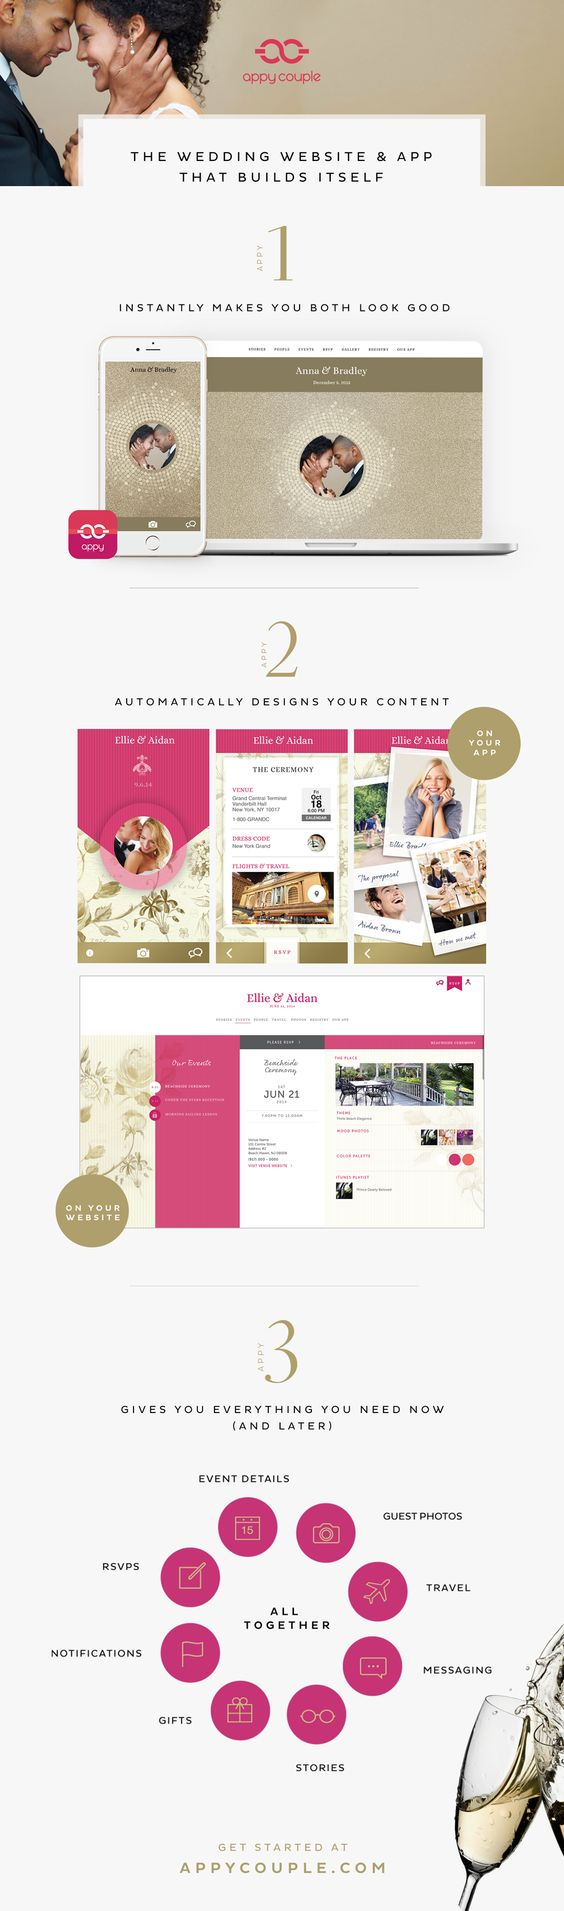 need help building a wedding website for your guests to get more need help building a wedding website for your guests to get more information try appy